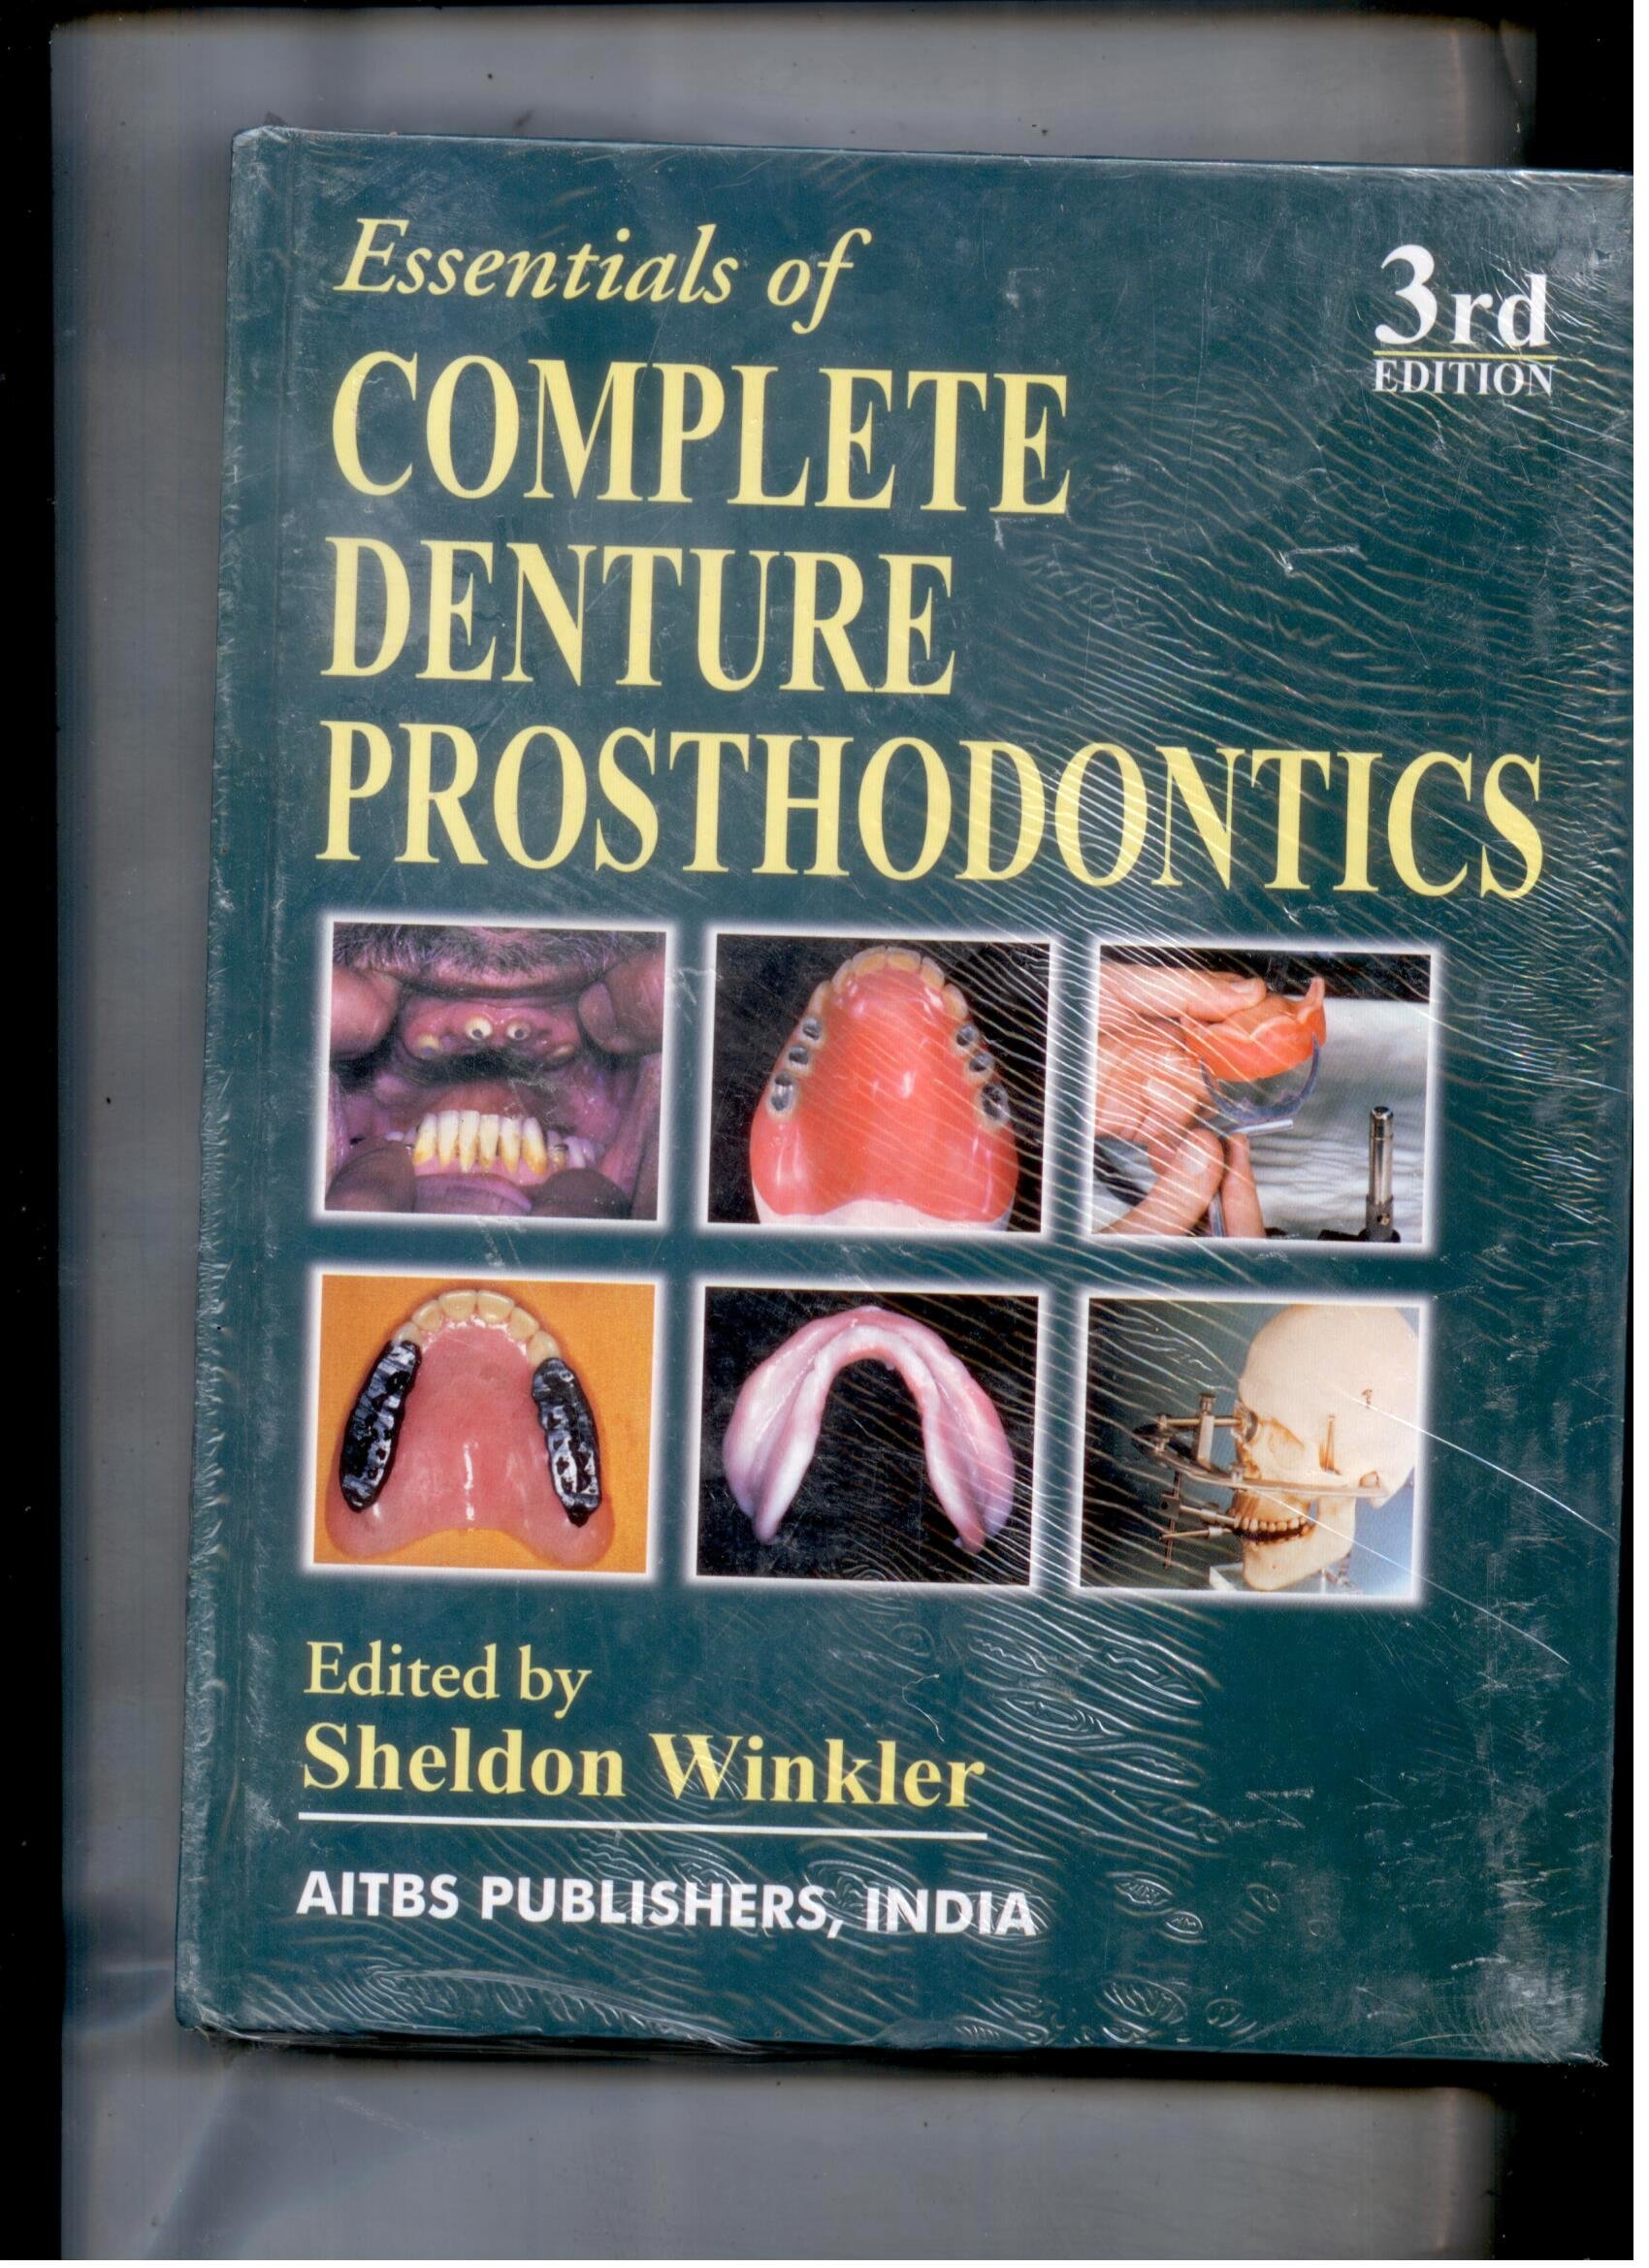 Essentials of complete denture prosthodontics 3ed winkler essentials of complete denture prosthodontics 3ed winkler 9789374735527 amazon books fandeluxe Gallery